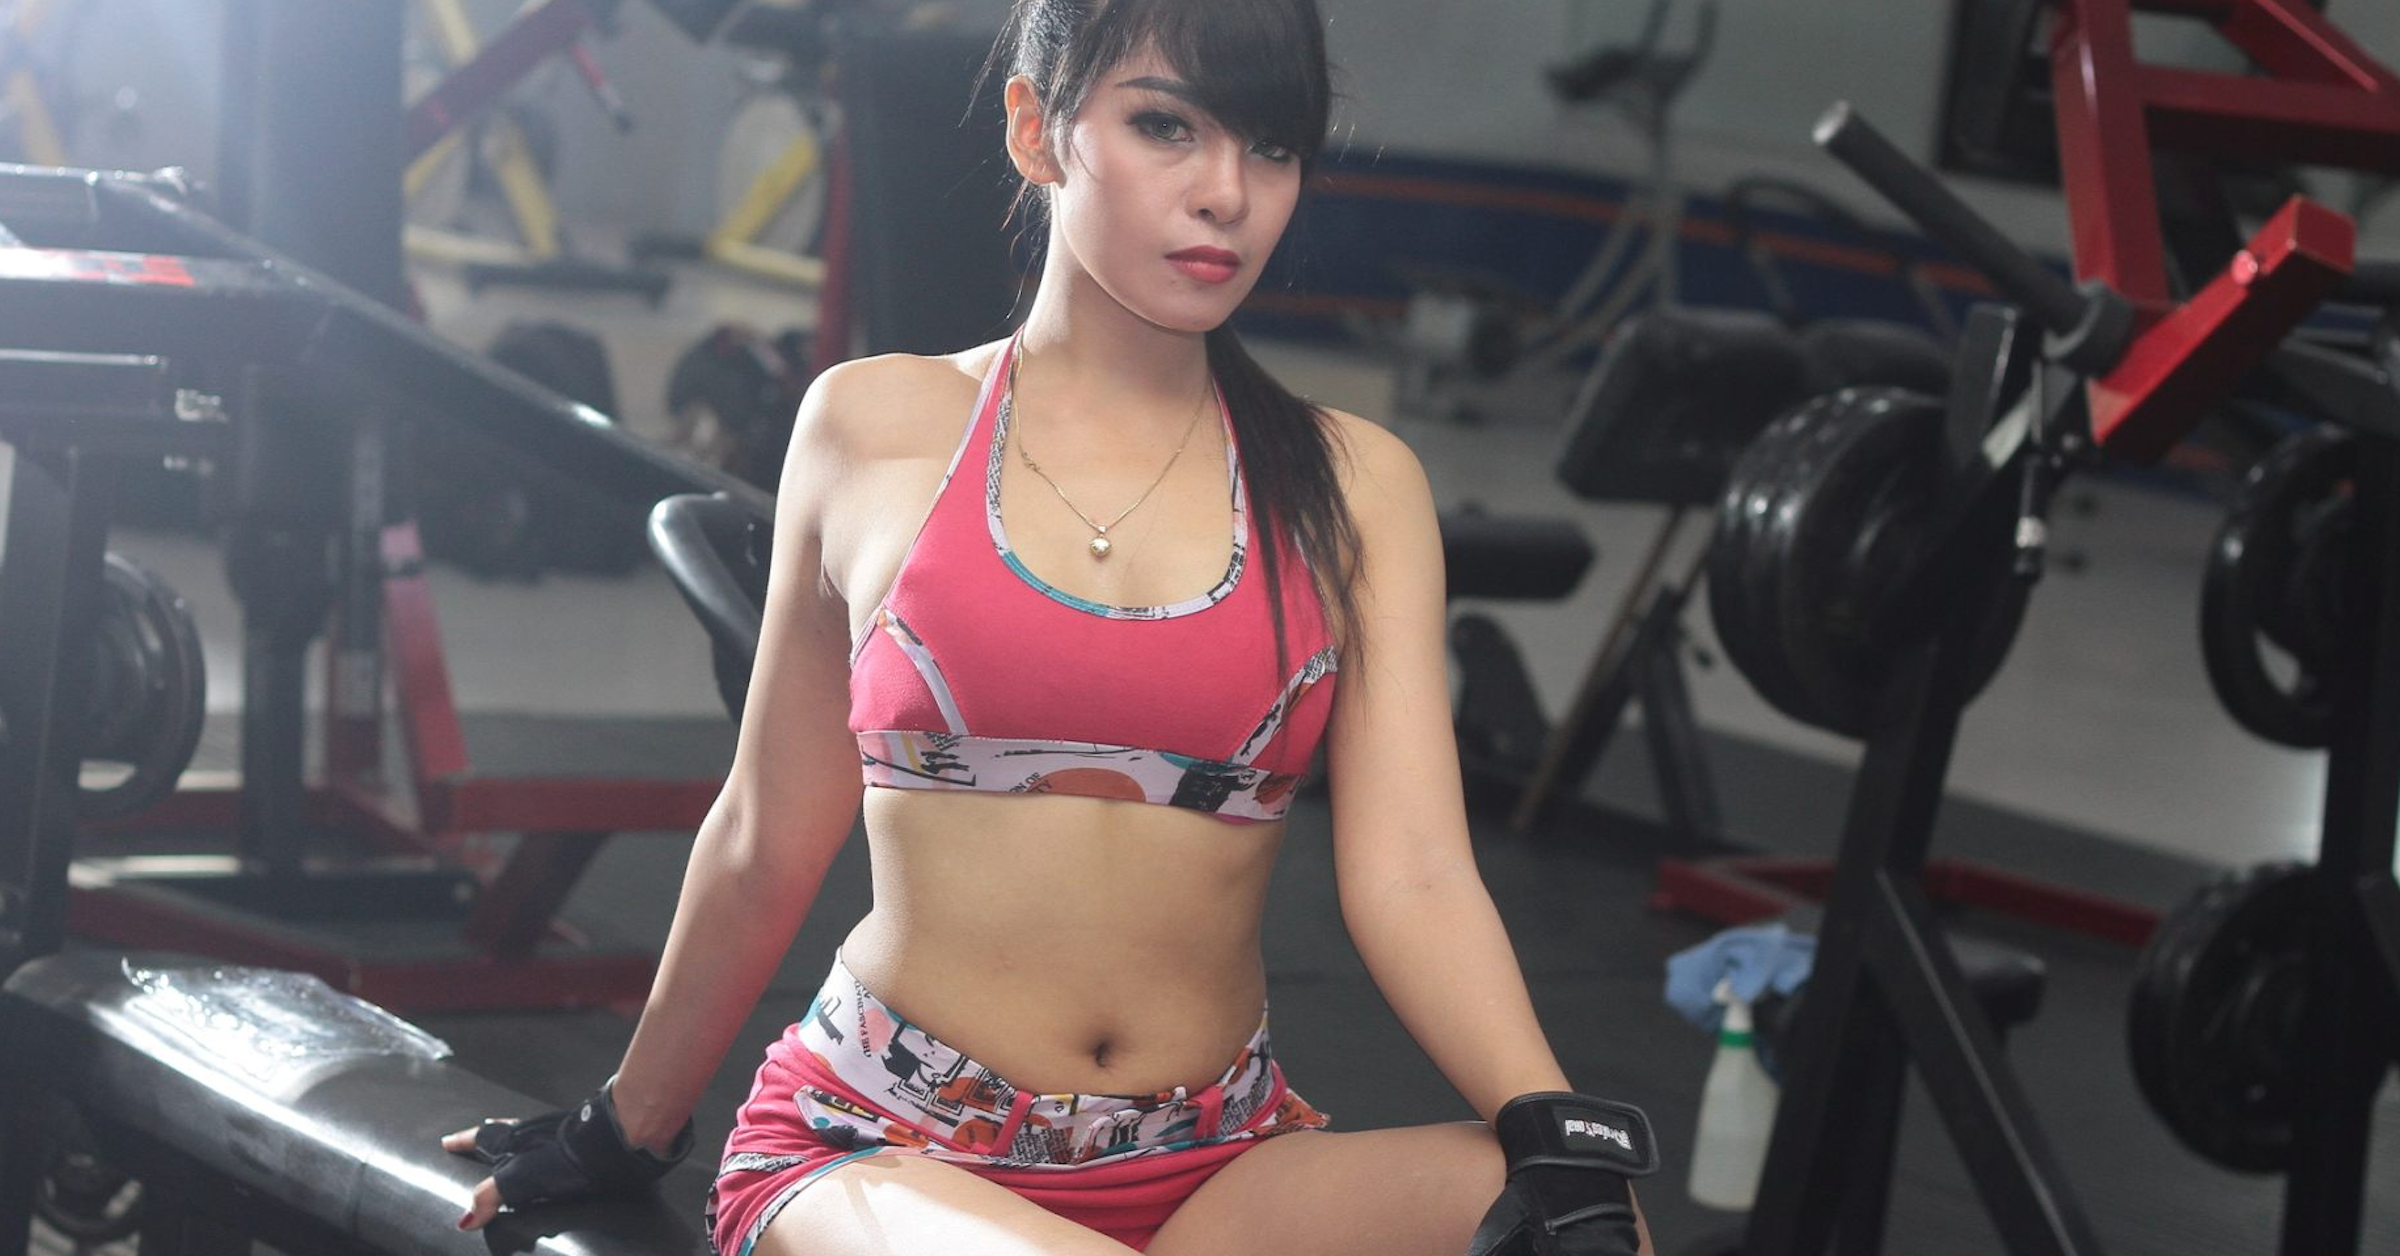 hot-girl-after-workout-wallpaper-in-gym_jpg.